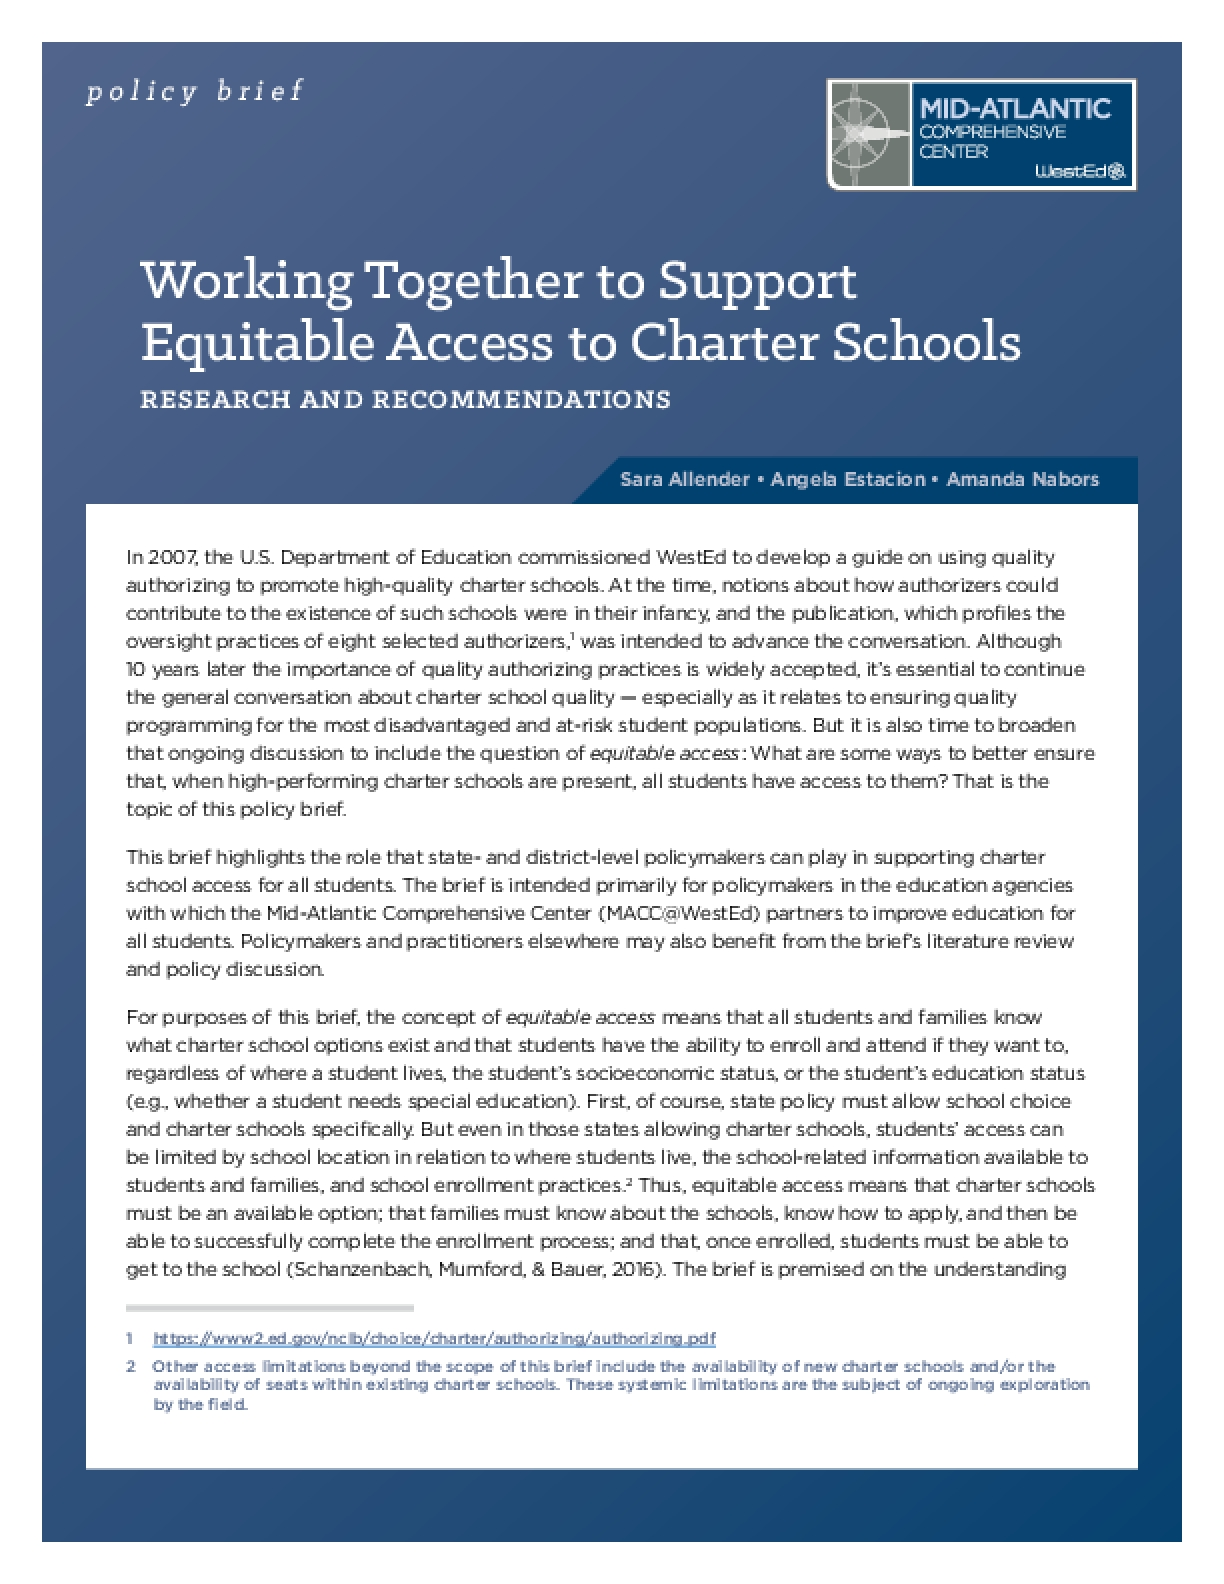 Working Together to Support Equitable Access to Charter Schools